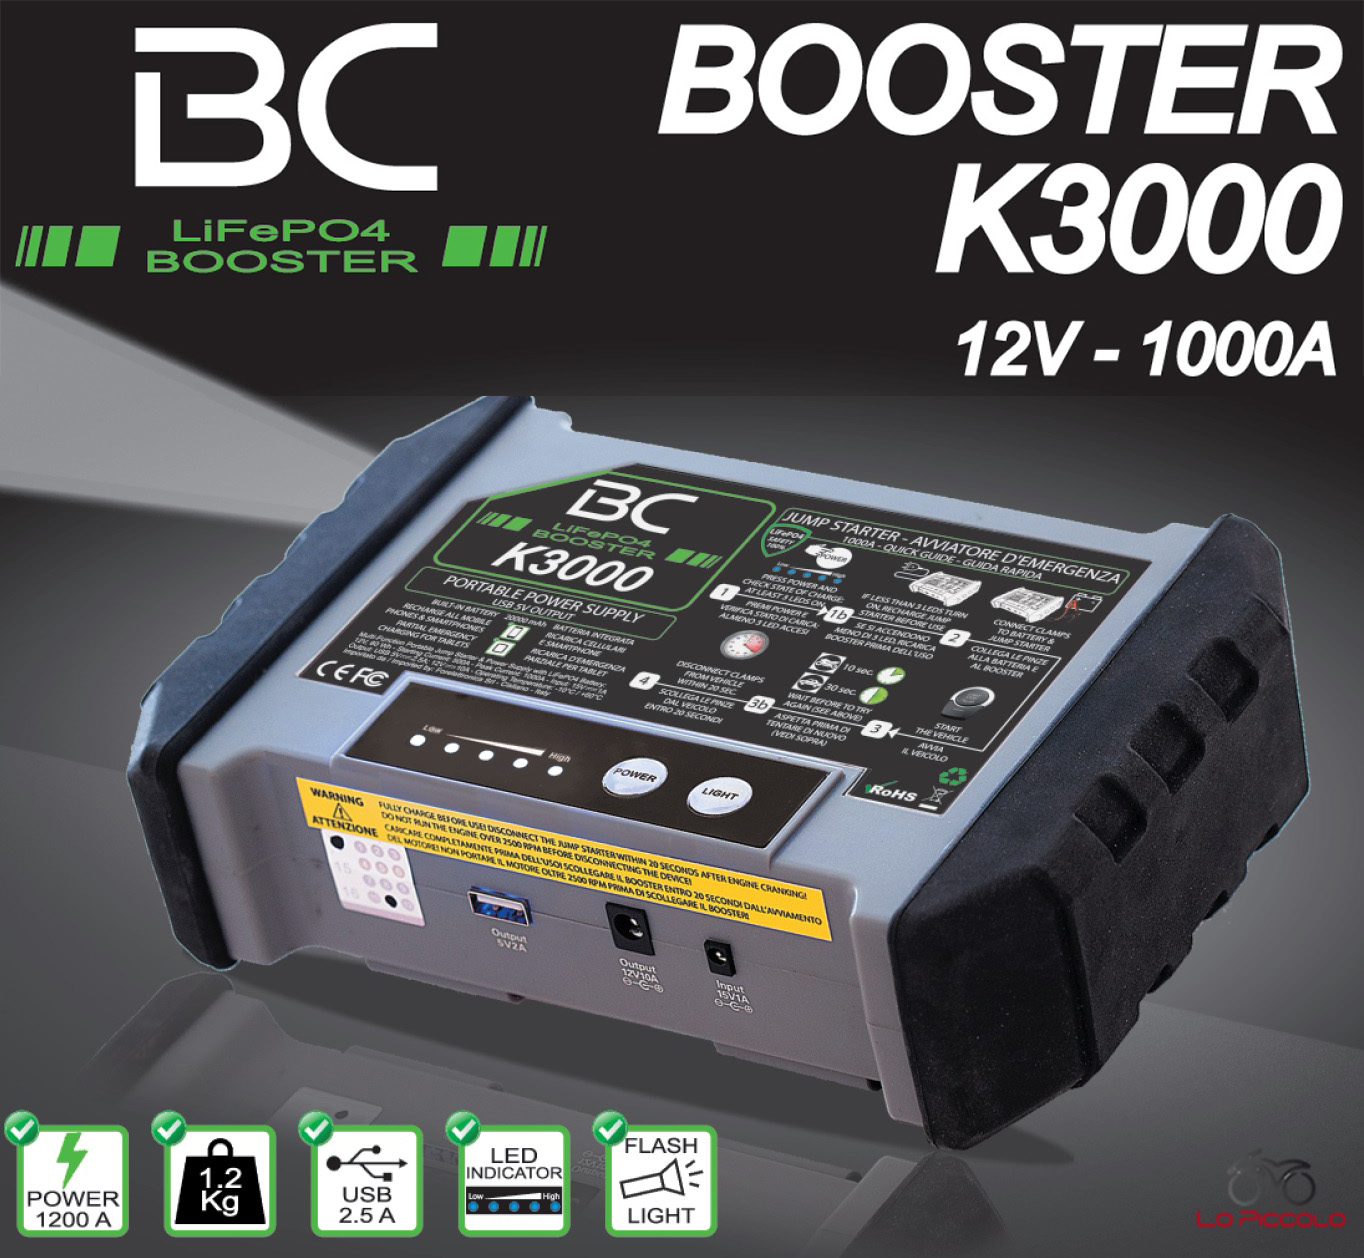 bc k3000 booster avviatore auto moto furgoni caricabatterie emergenza 12v 1000a ebay. Black Bedroom Furniture Sets. Home Design Ideas